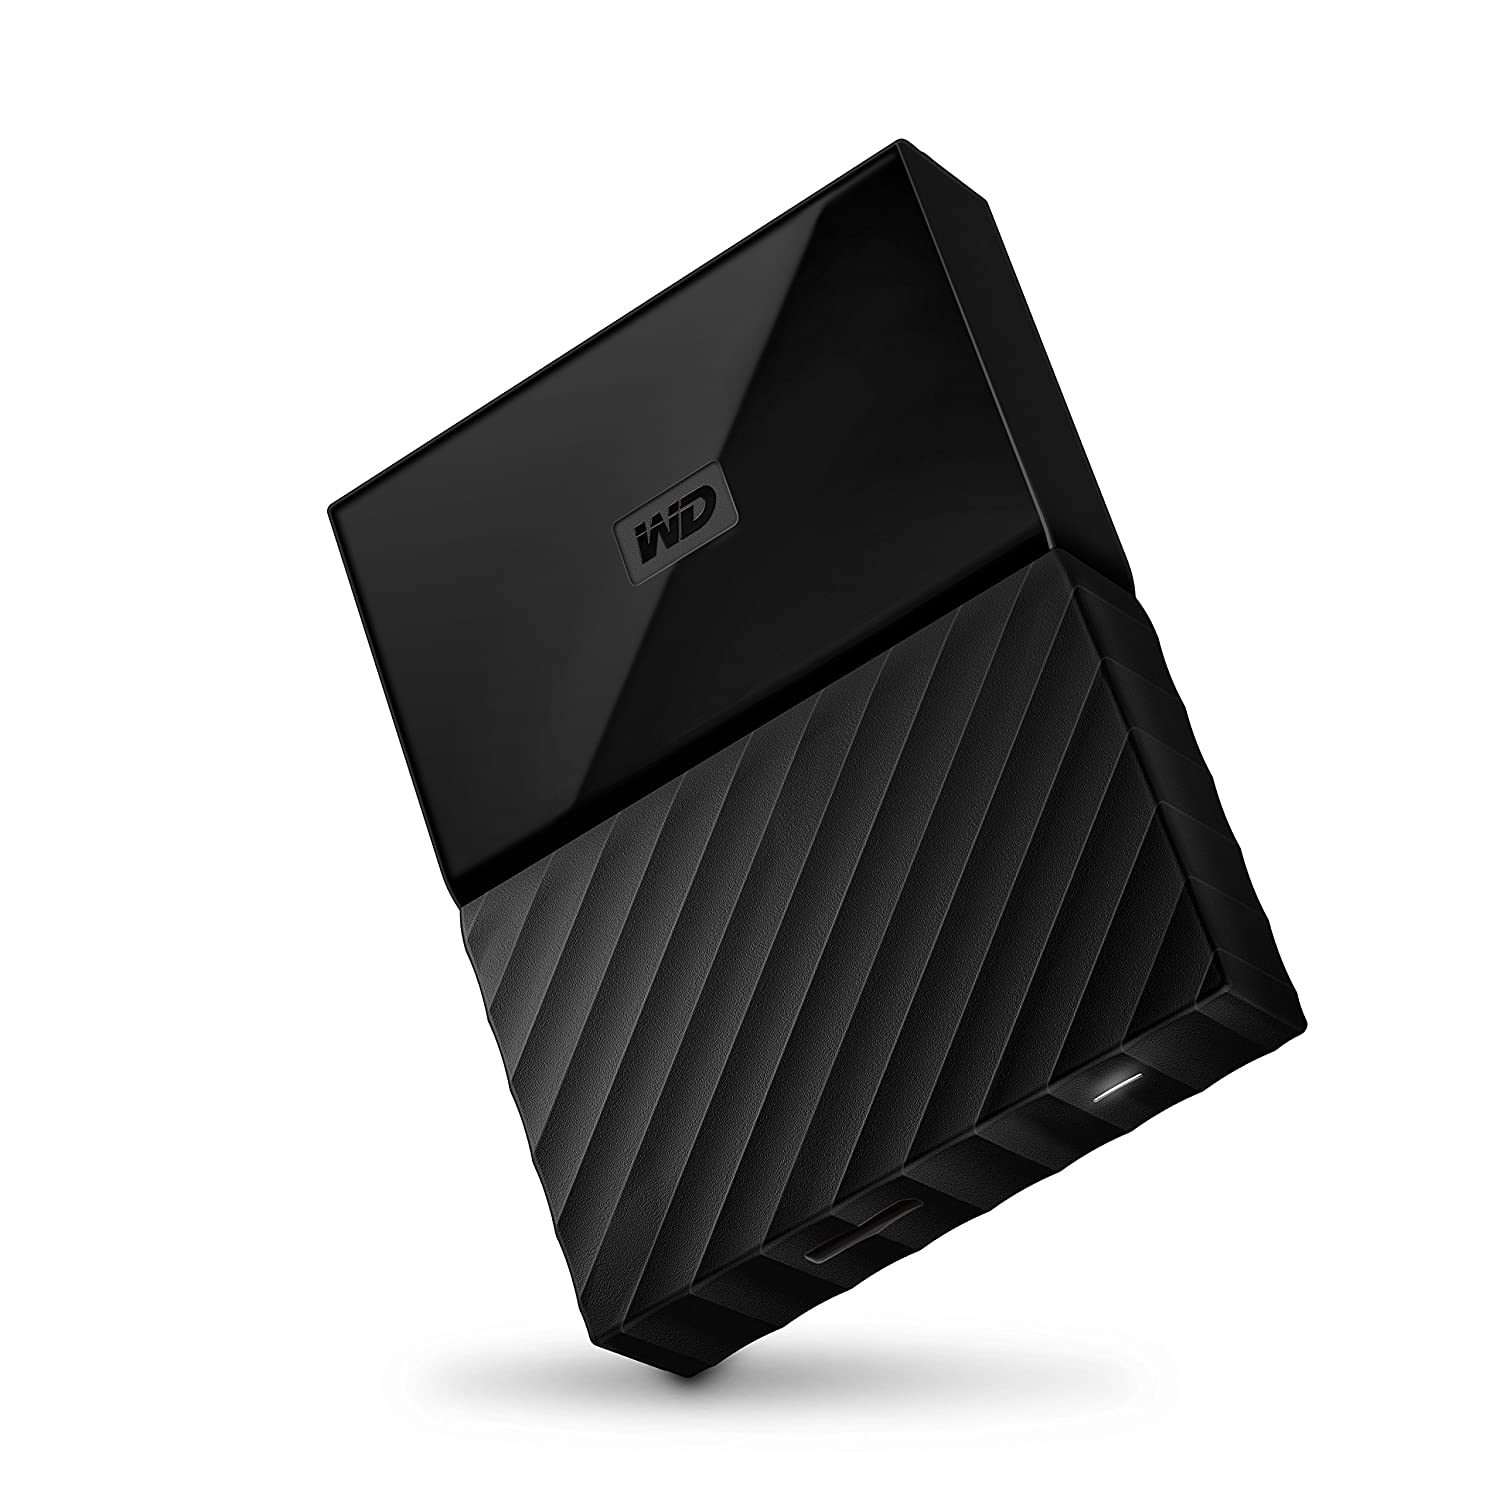 WD My Passport 4TB External Portable Hard Drive + $25 Gift Card $117.99 @ Best Buy w/FS online deal